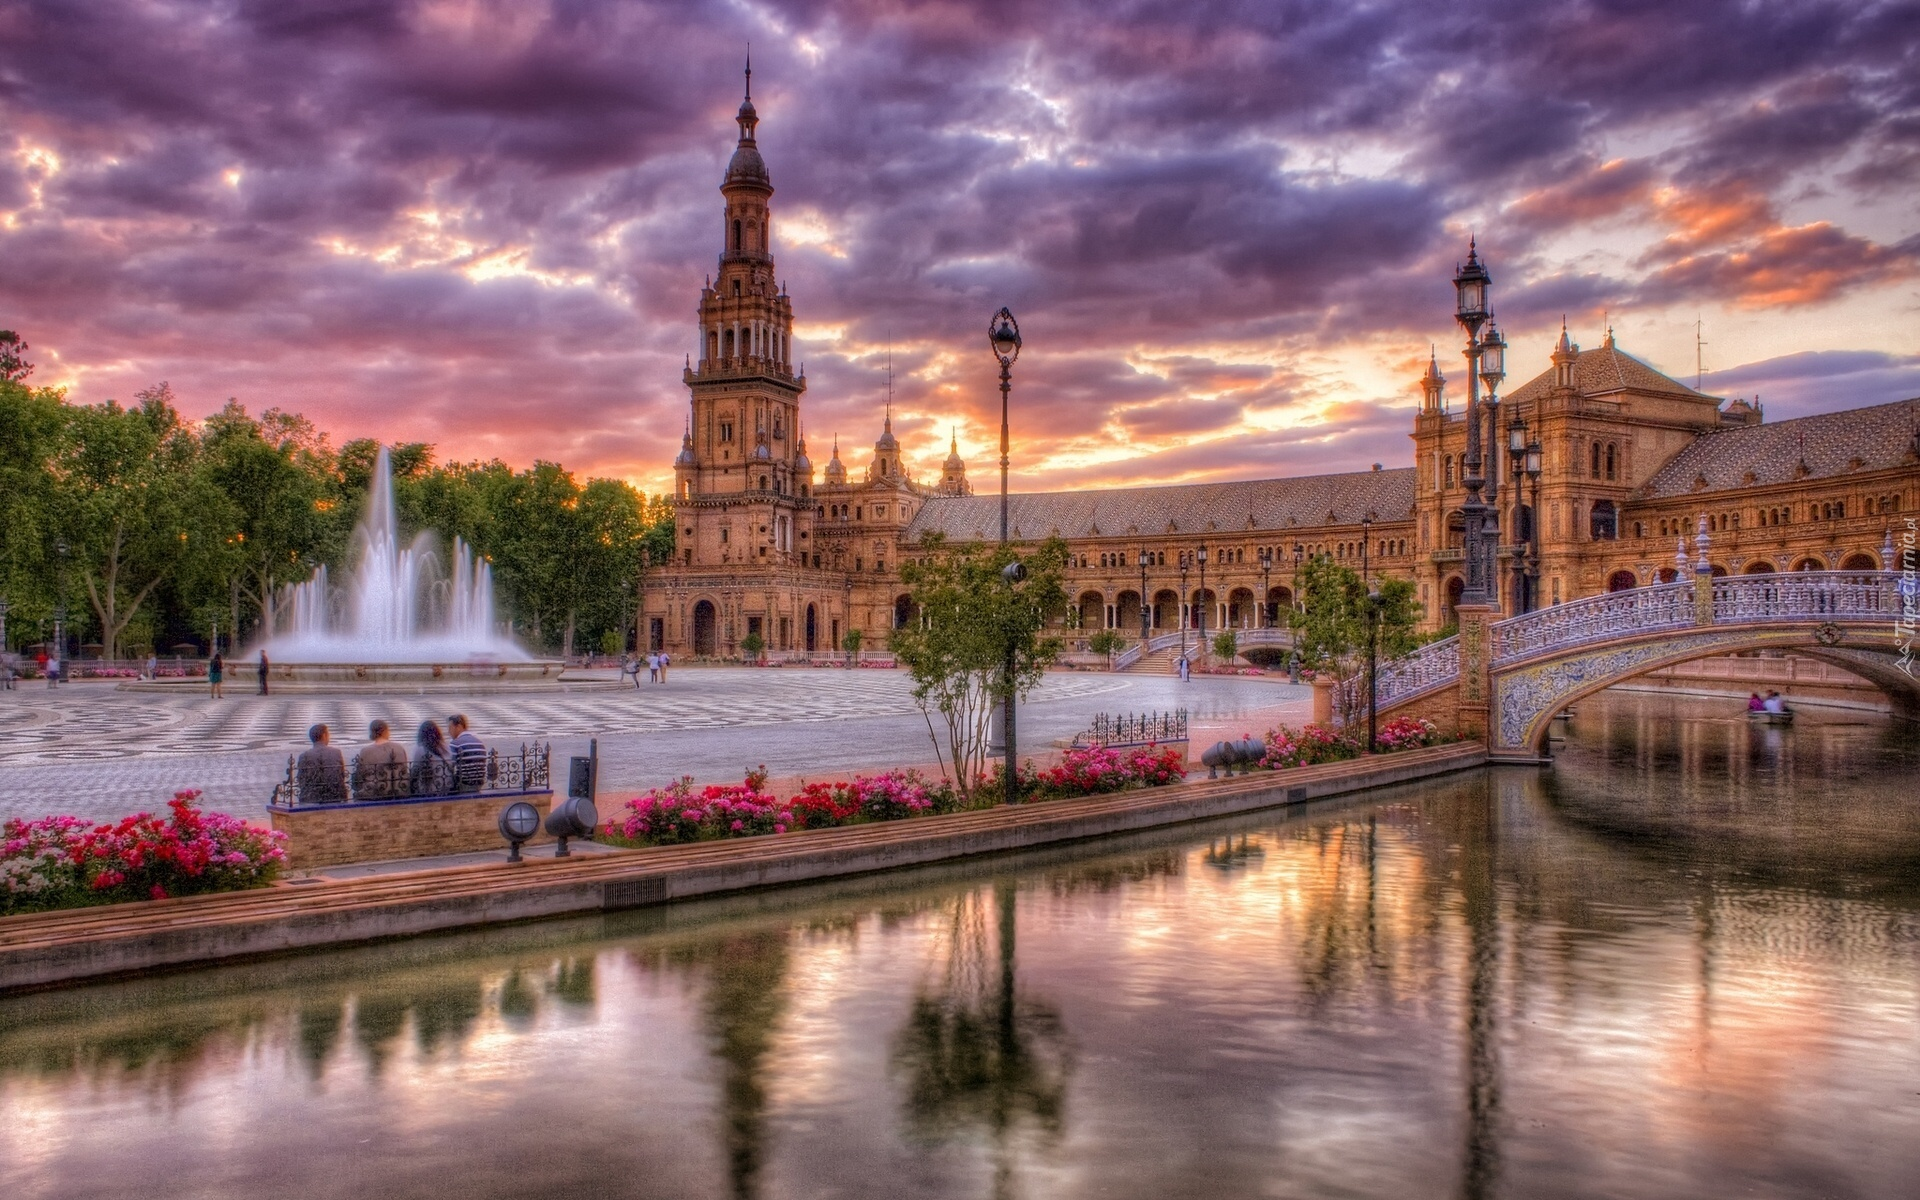 Plaza de Los Reyes fountain in Seville, Spain